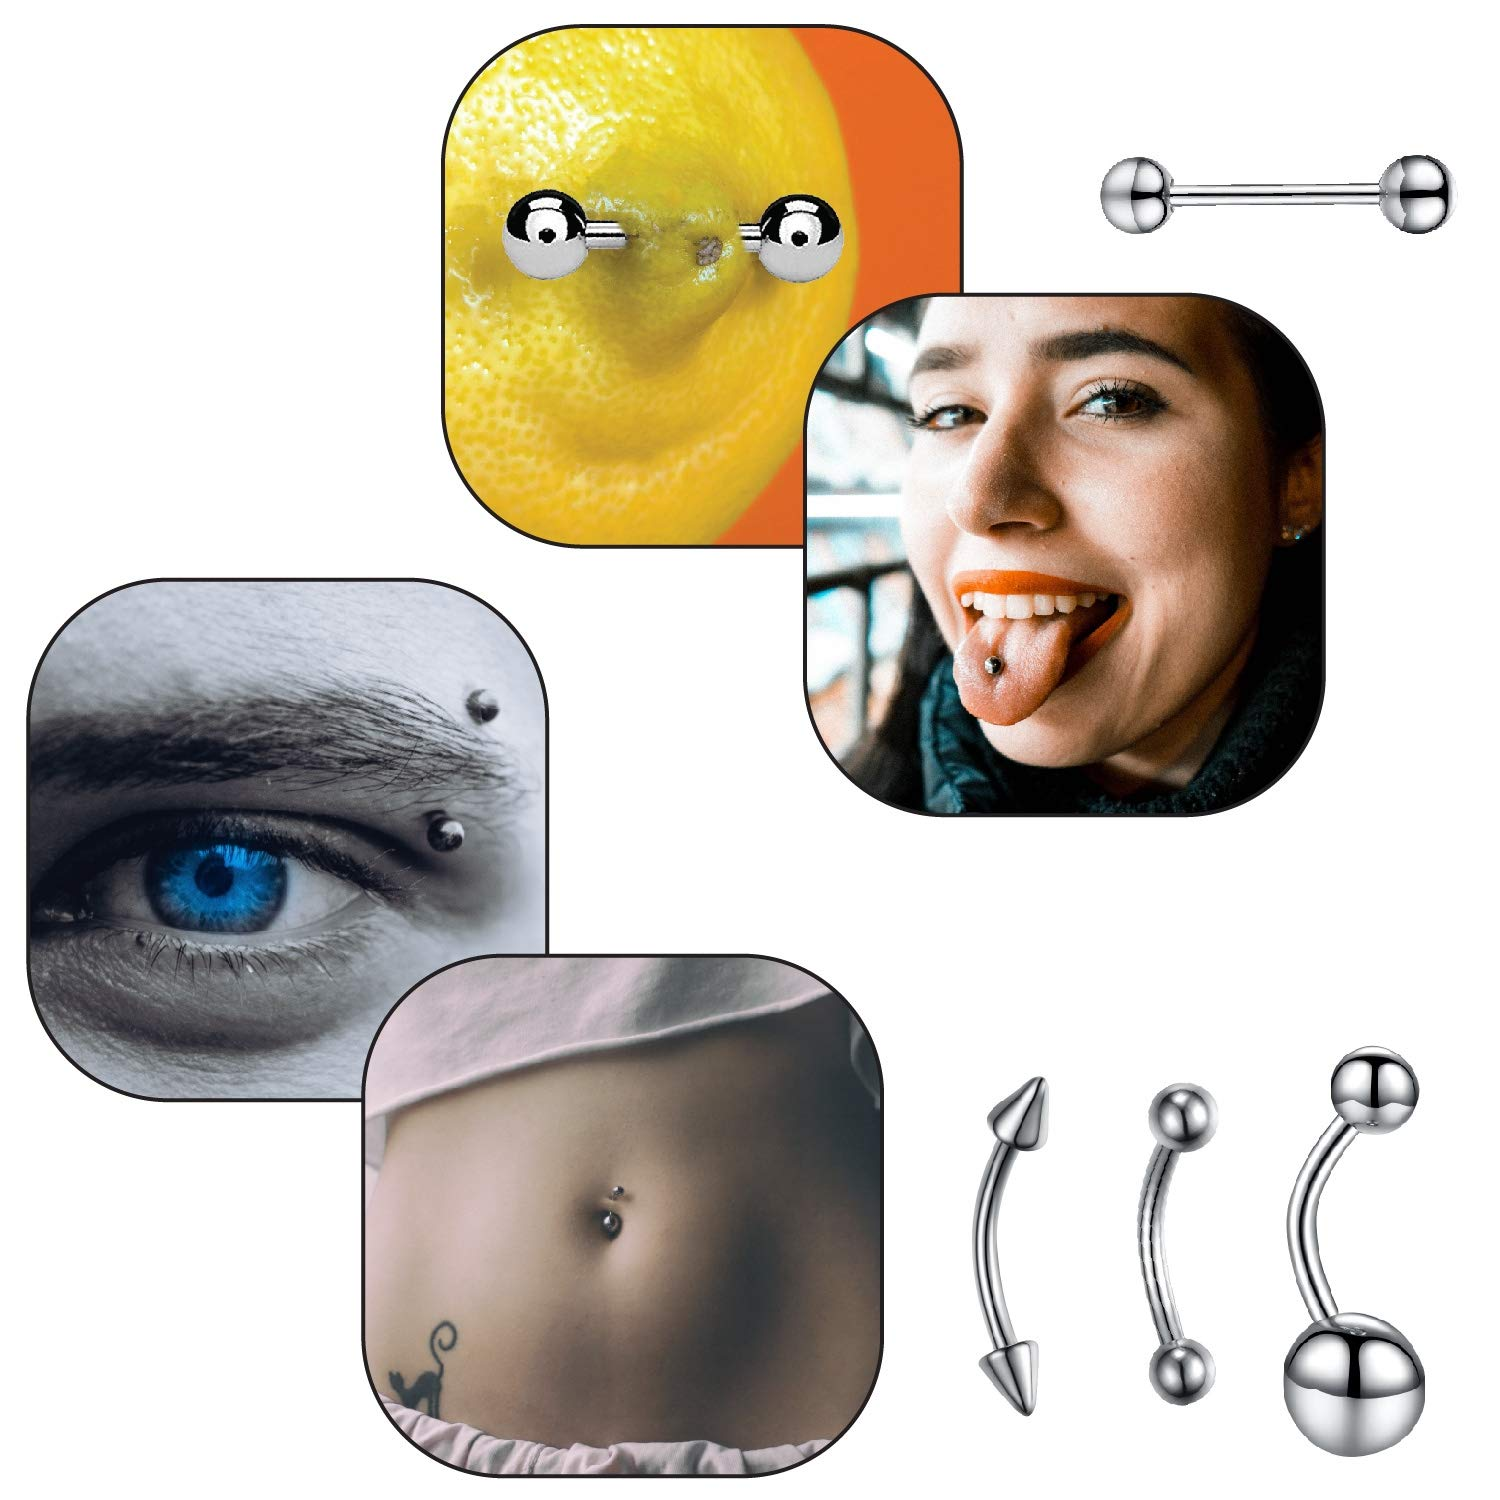 BodyJ4You 36PC PRO Piercing Kit Stainless Steel 14G 16G Belly Ring Tongue Nipple Nose Jewelry